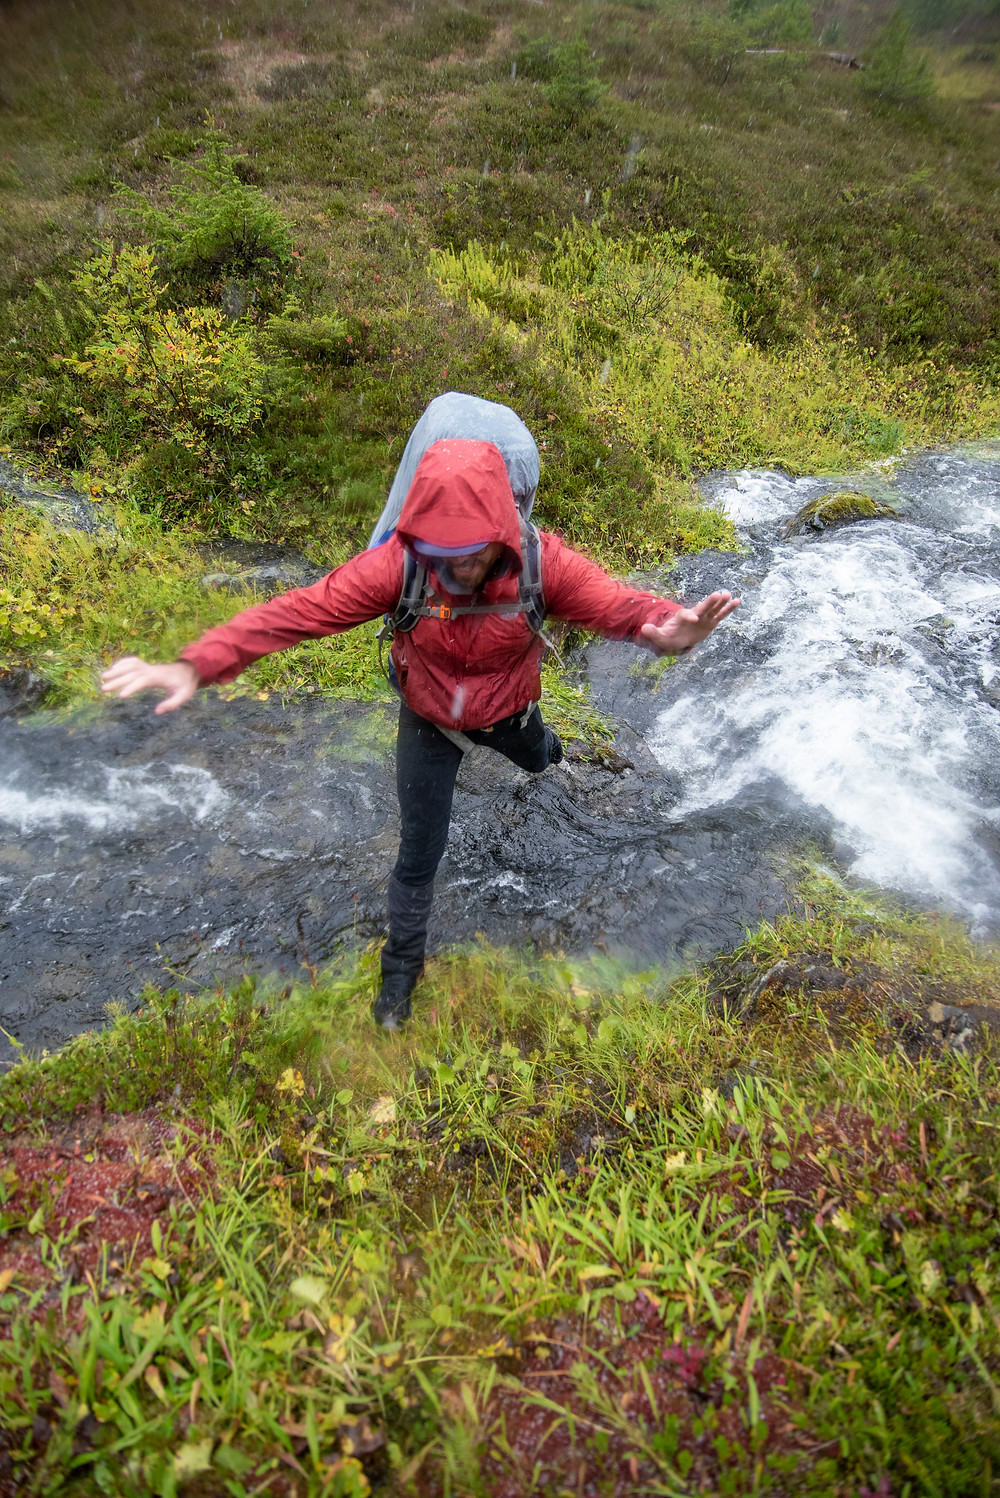 A hiker leaps across a stream